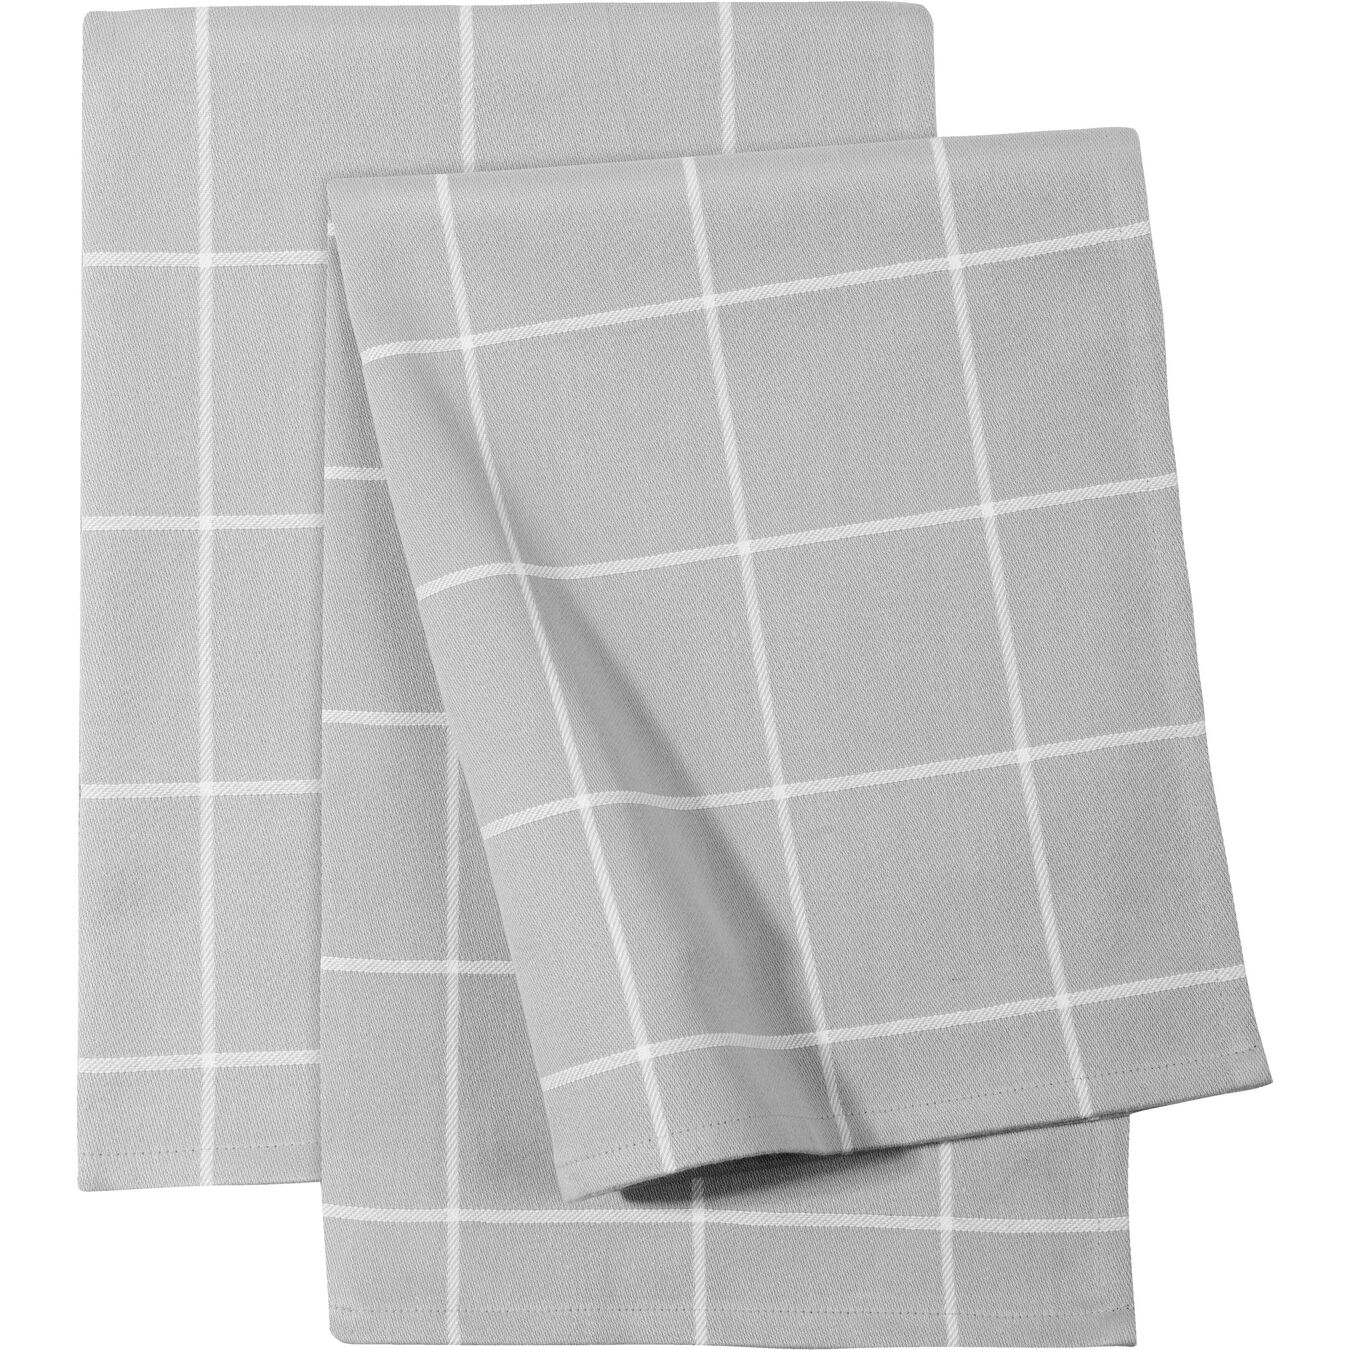 2 Piece Cotton Kitchen towel set checkered, grey,,large 1